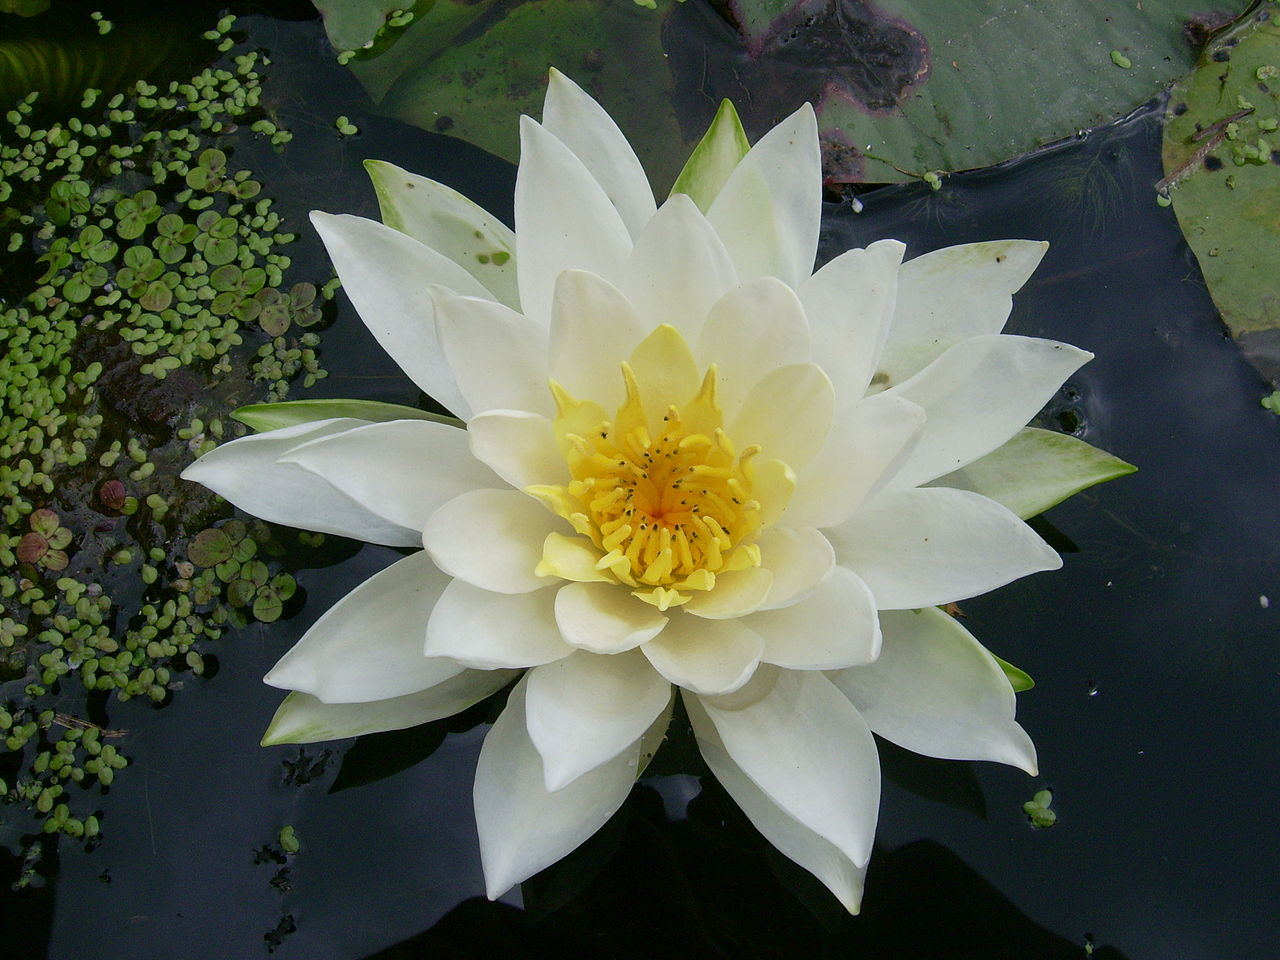 National Flower Lotus Wikipedia Water Lily By Pen And Scythe On